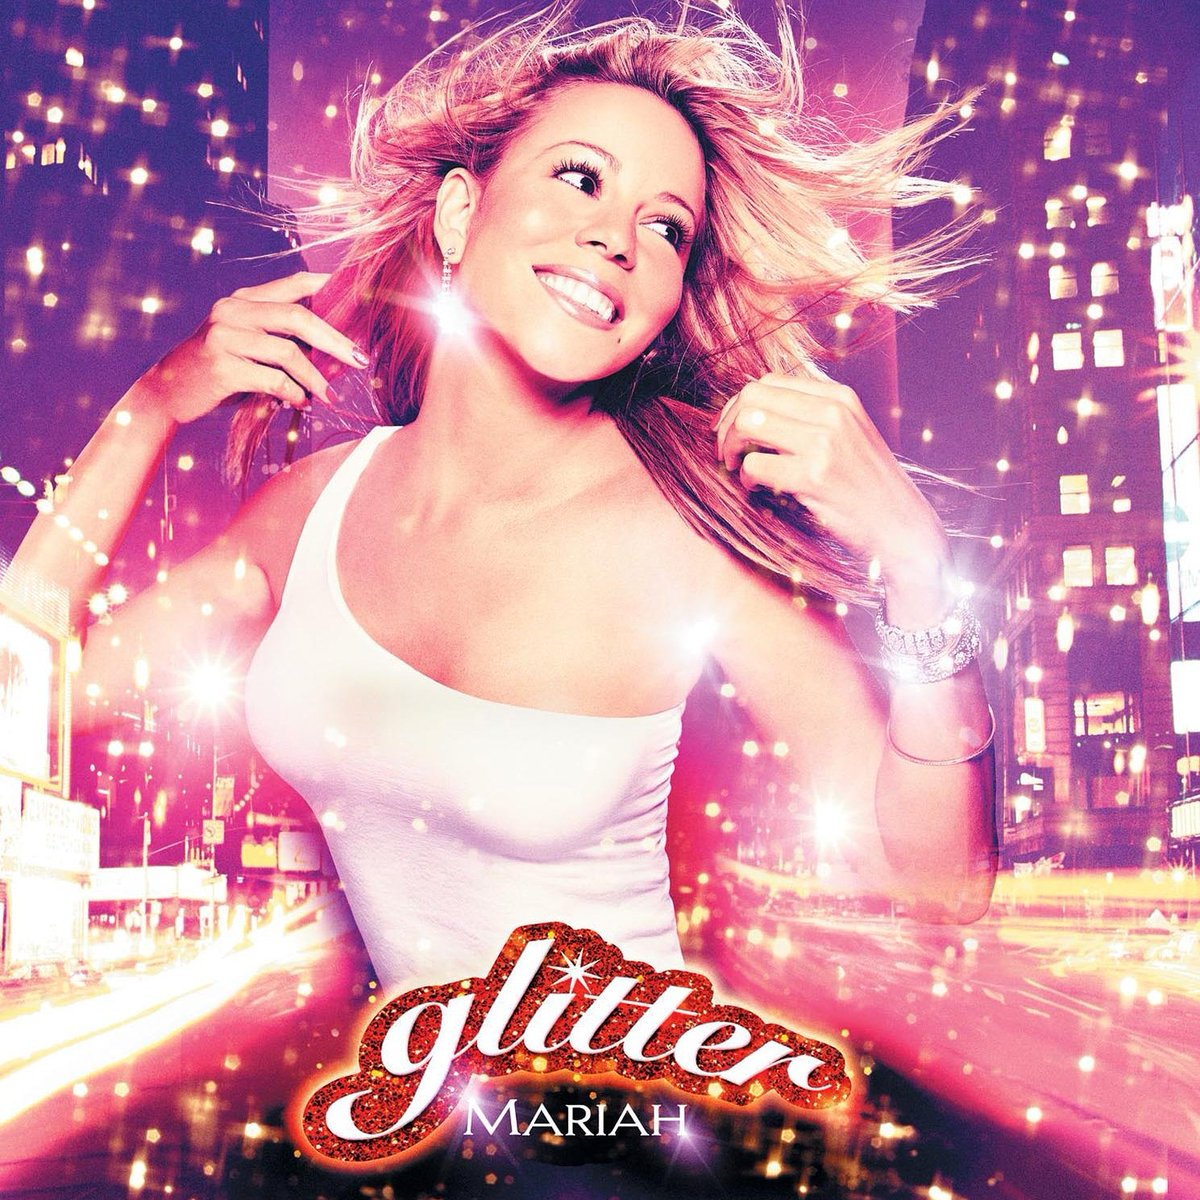 I have to dedicate today's #tbt to Glitter, which is currently #1 on the iTunes albums chart, 17 years after its release and on the eve of my new album release! My fans are THE BEST 💖💖💖 #JusticeForGlitter!! LET'S GO #CAUTION⚠️